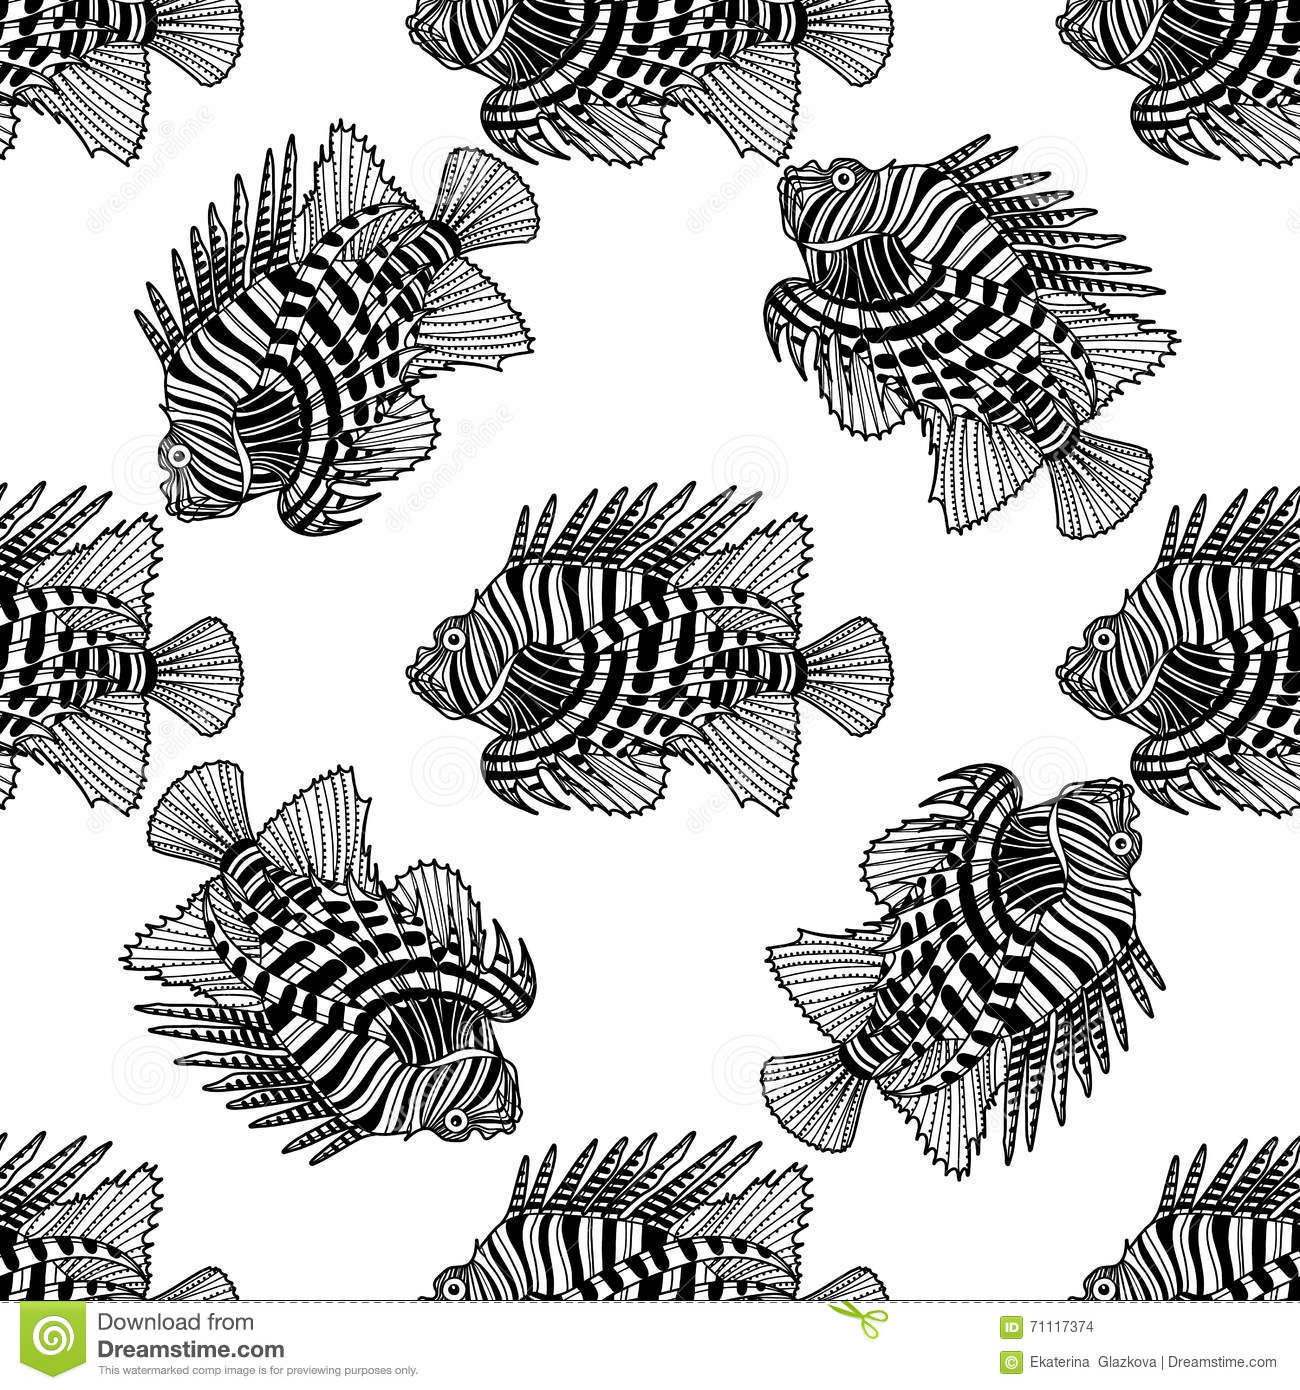 Graphic lion fish stock vector. Illustration of life - 71117374